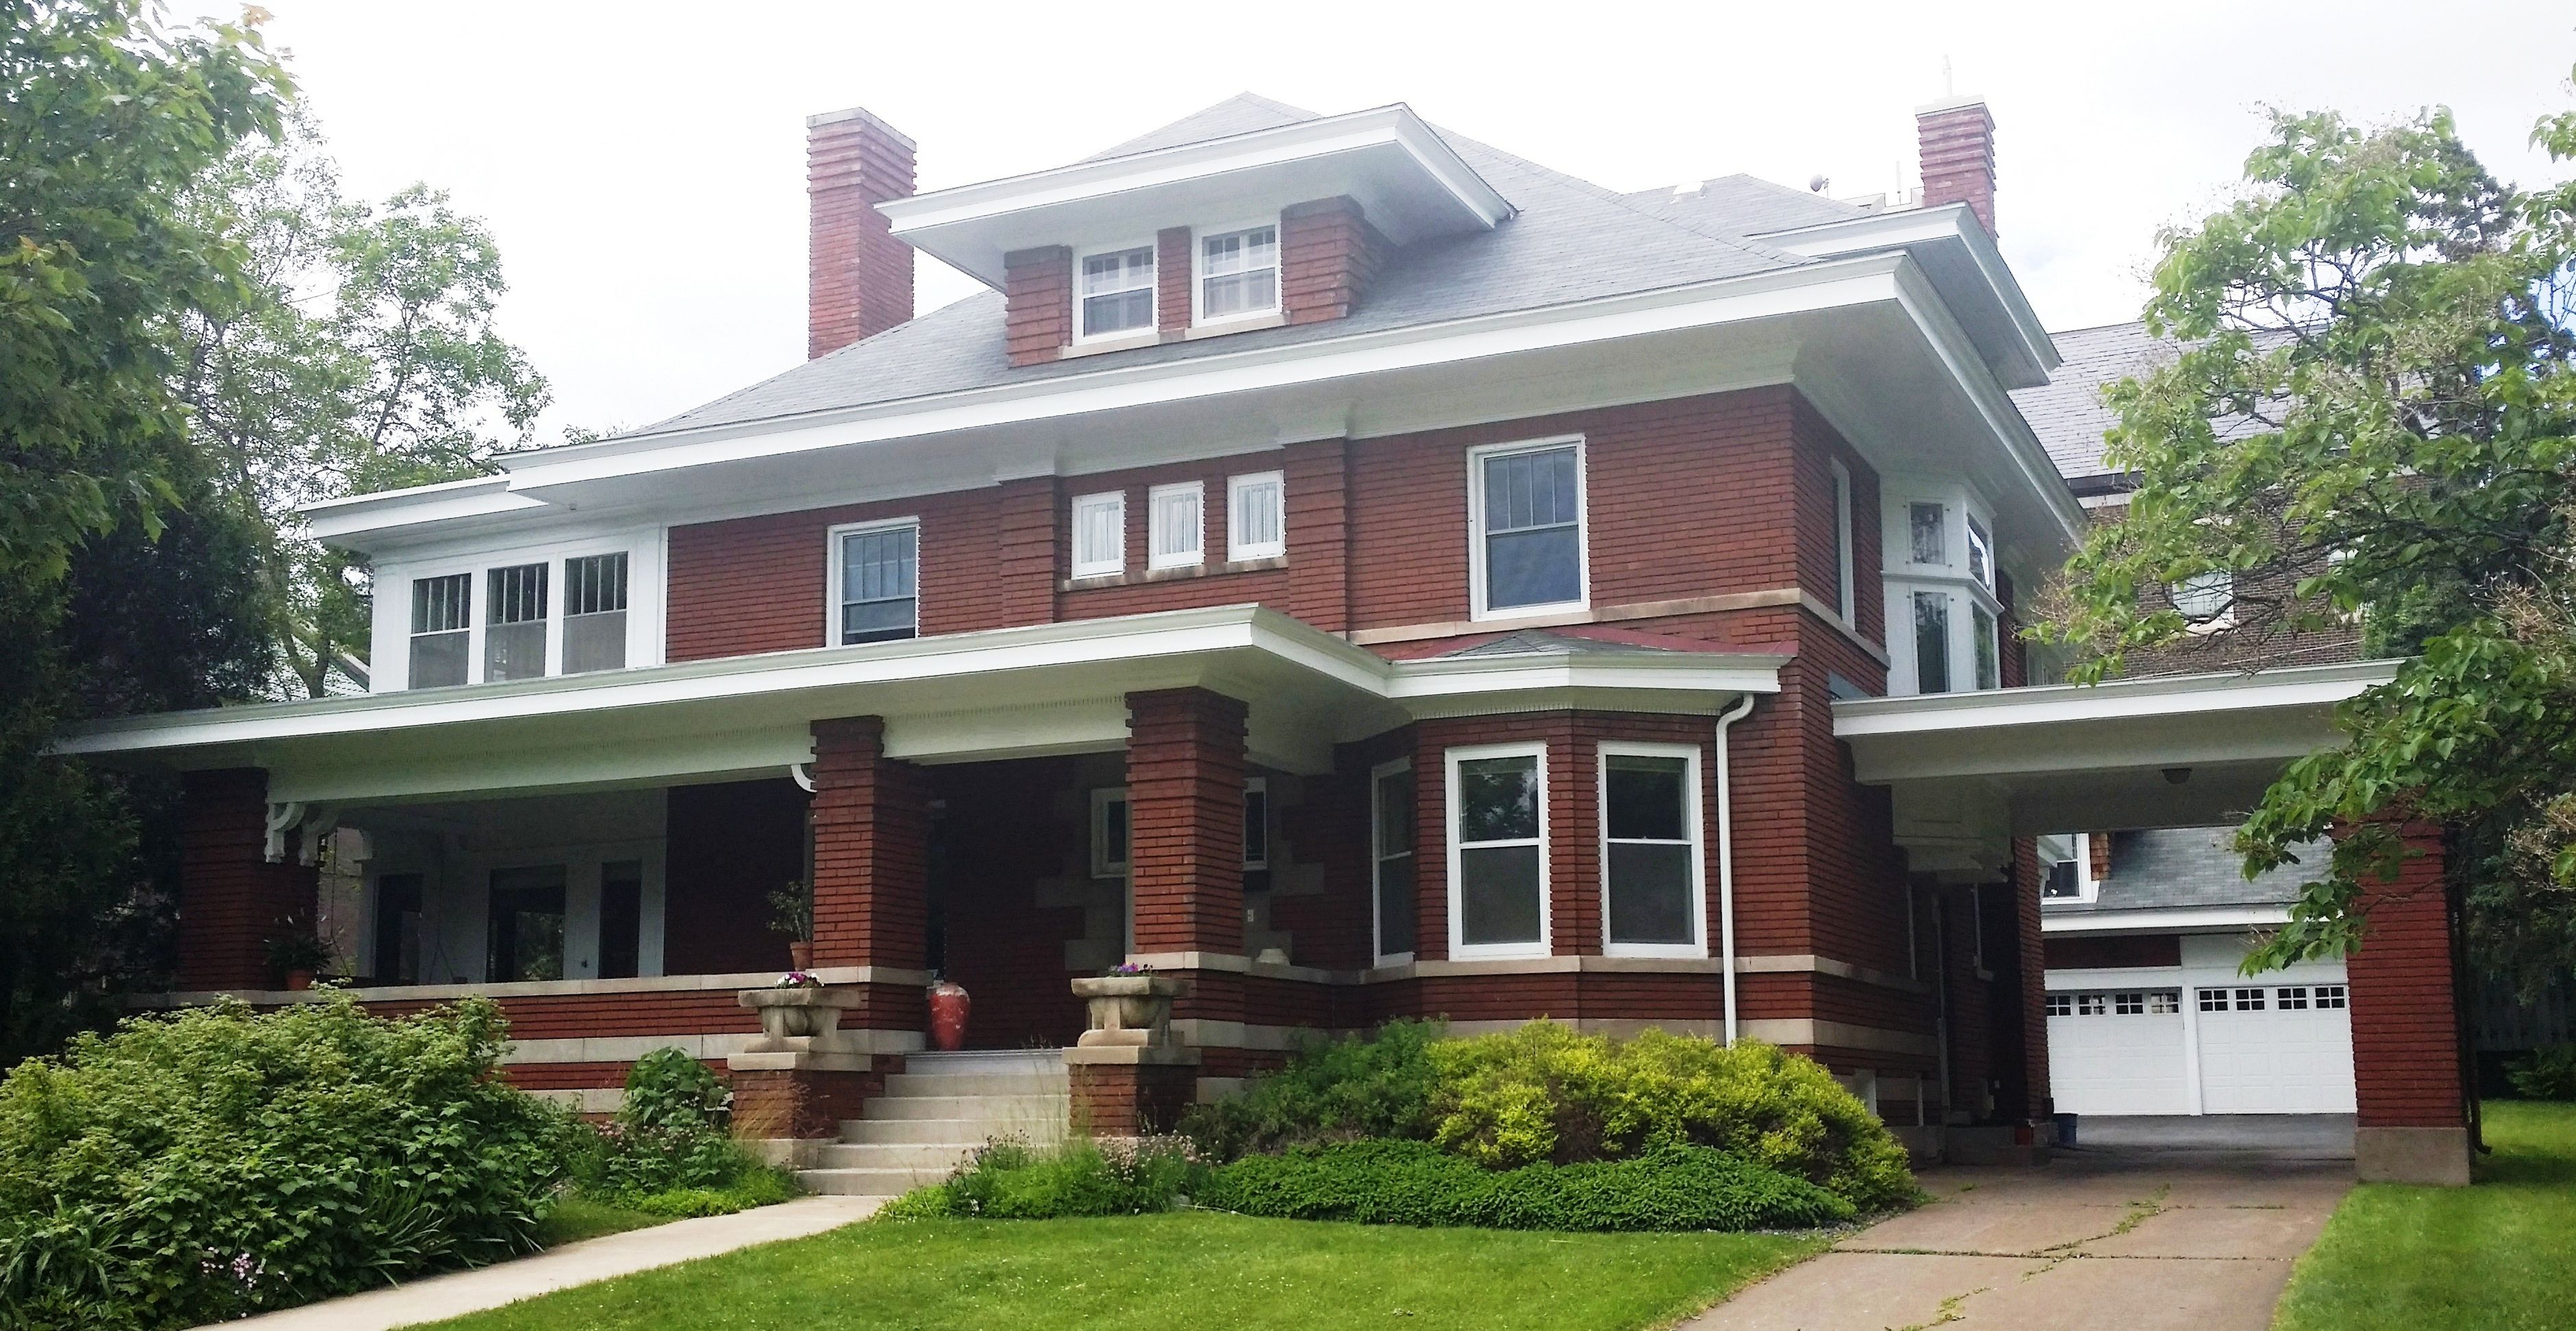 Home In Duluth Mn It Is Currently A Private Residence House Styles Prairie Style Houses Craftsman Style Homes